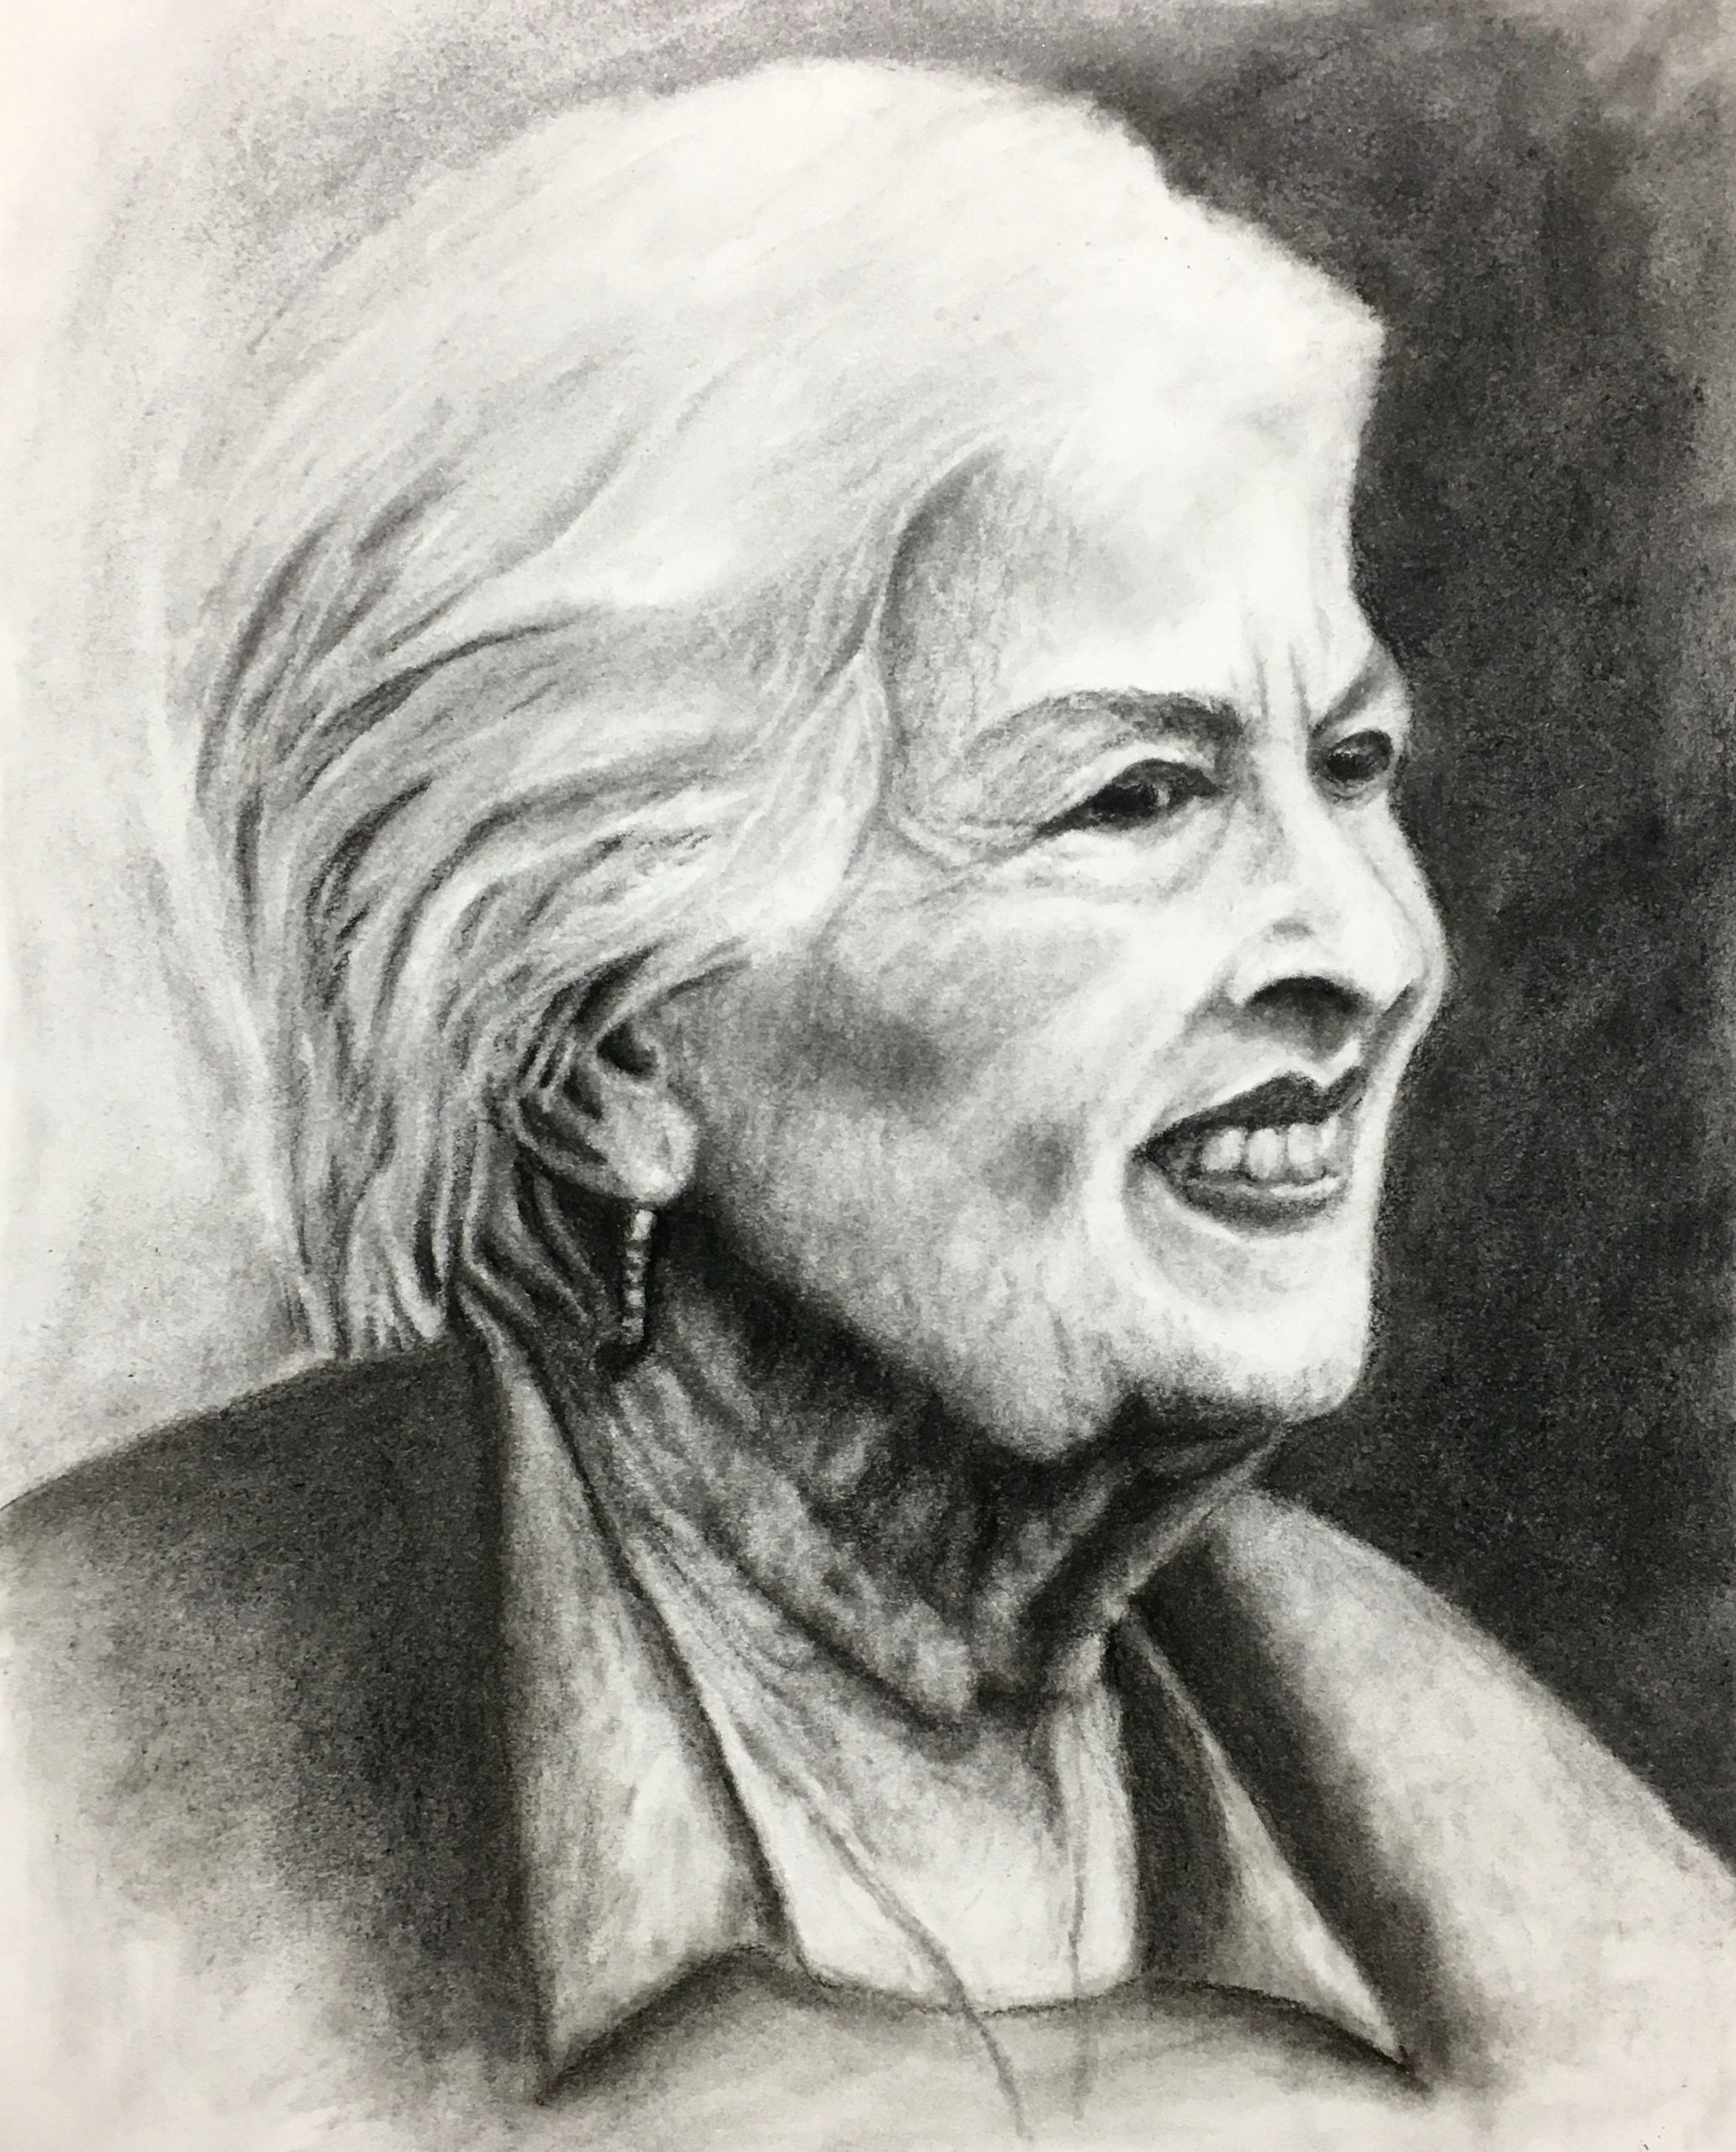 Lady sitting in a park, Mexico, charcoal, Zoe Yin